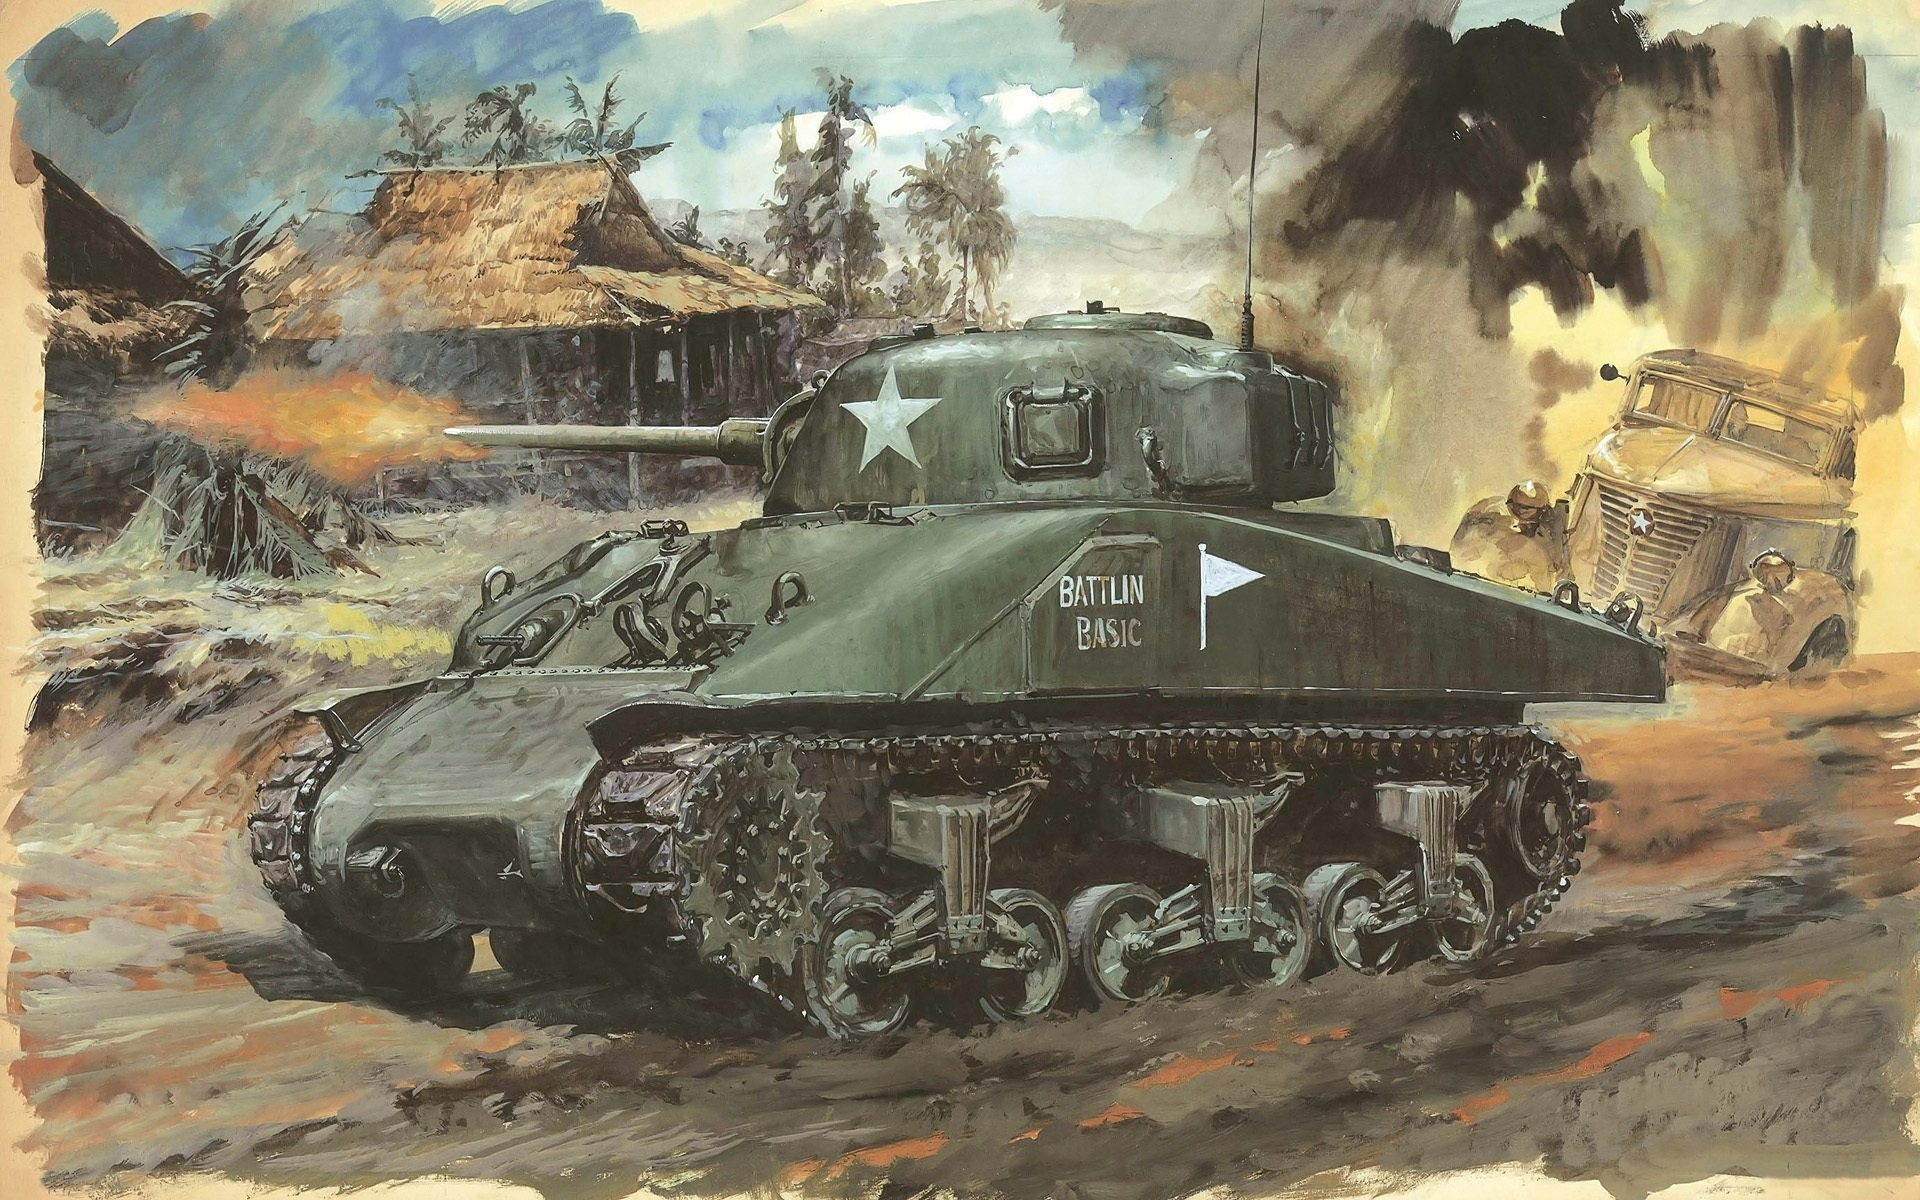 Wallpaper weapons, Japanese, art, WW2, American, soldiers, figure … |  Real Life of WW2 | Pinterest